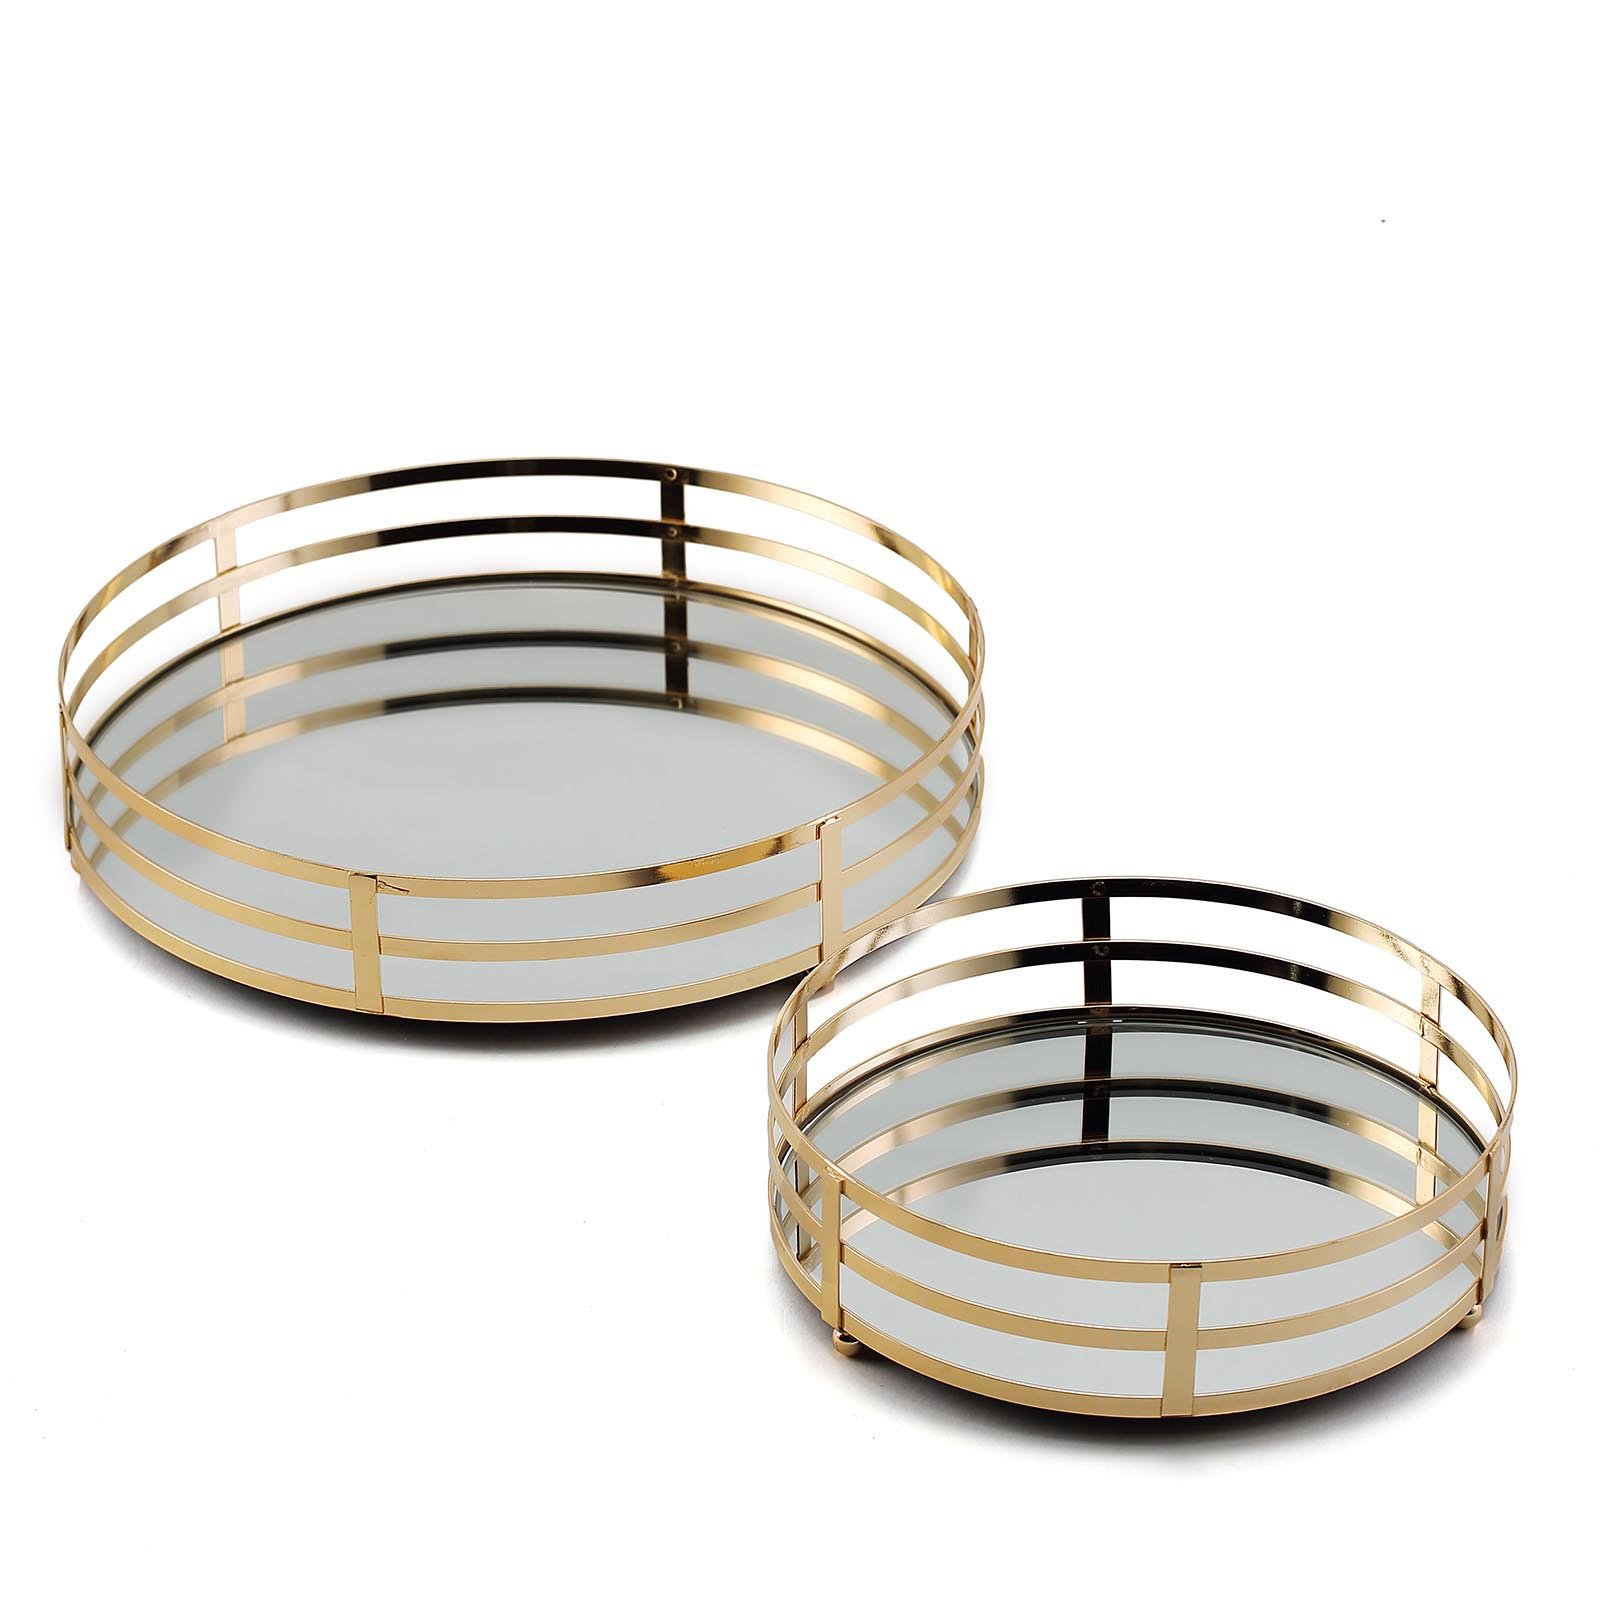 2 Pcs Gold Metal Round Mirror Serving Trays Wedding Party Events Decorations Ebay